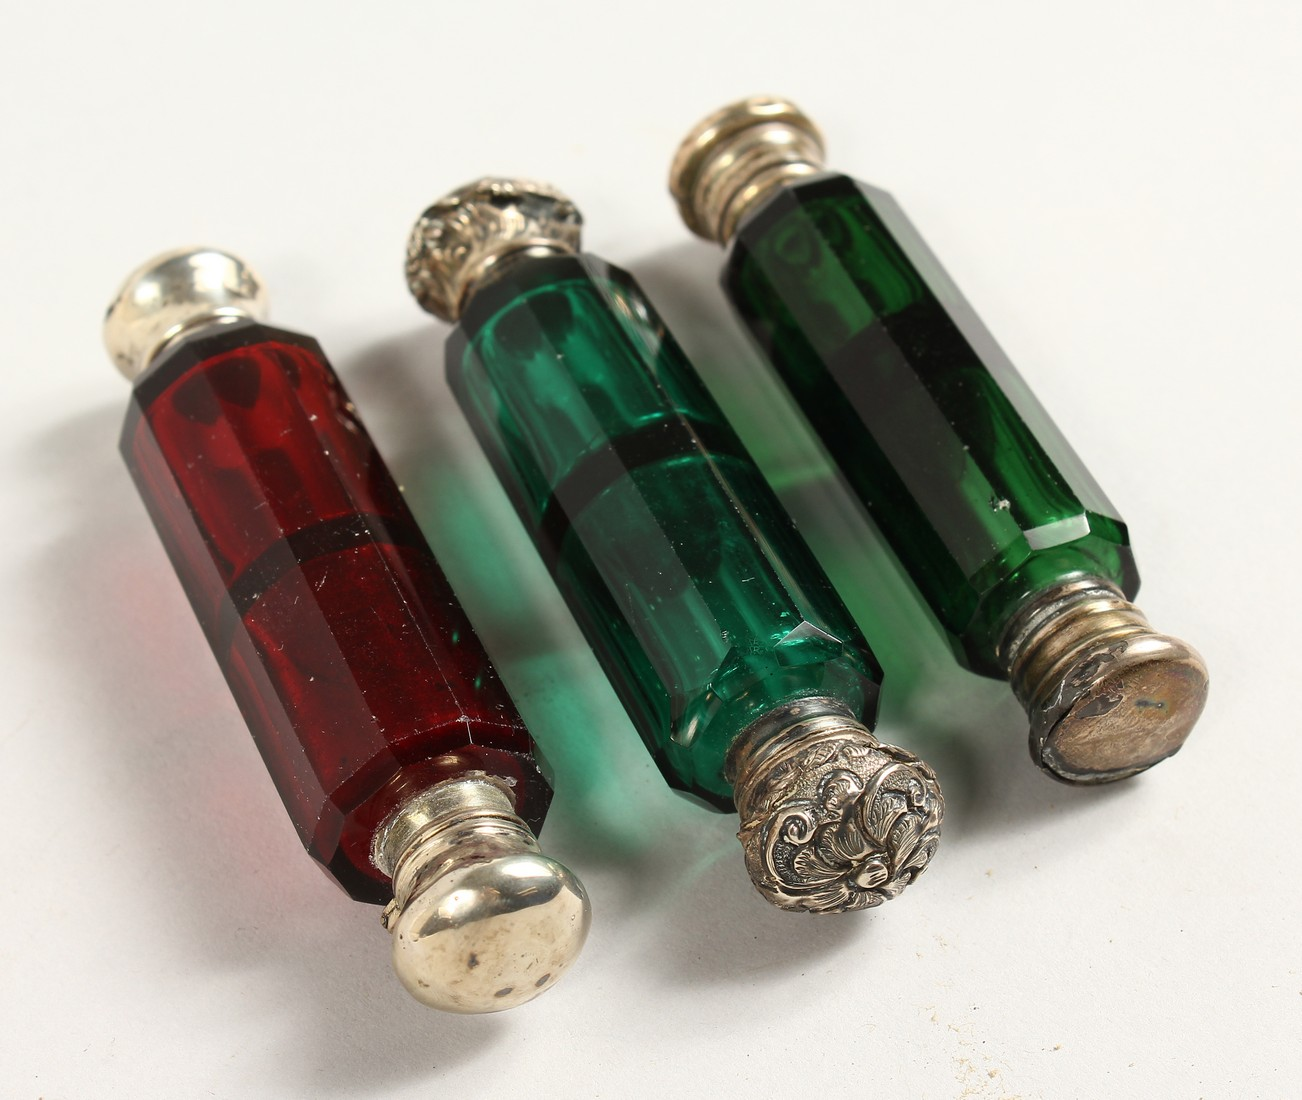 THREE VICTORIAN DOUBLE-ENDED SCENT BOTTLES 4ins long